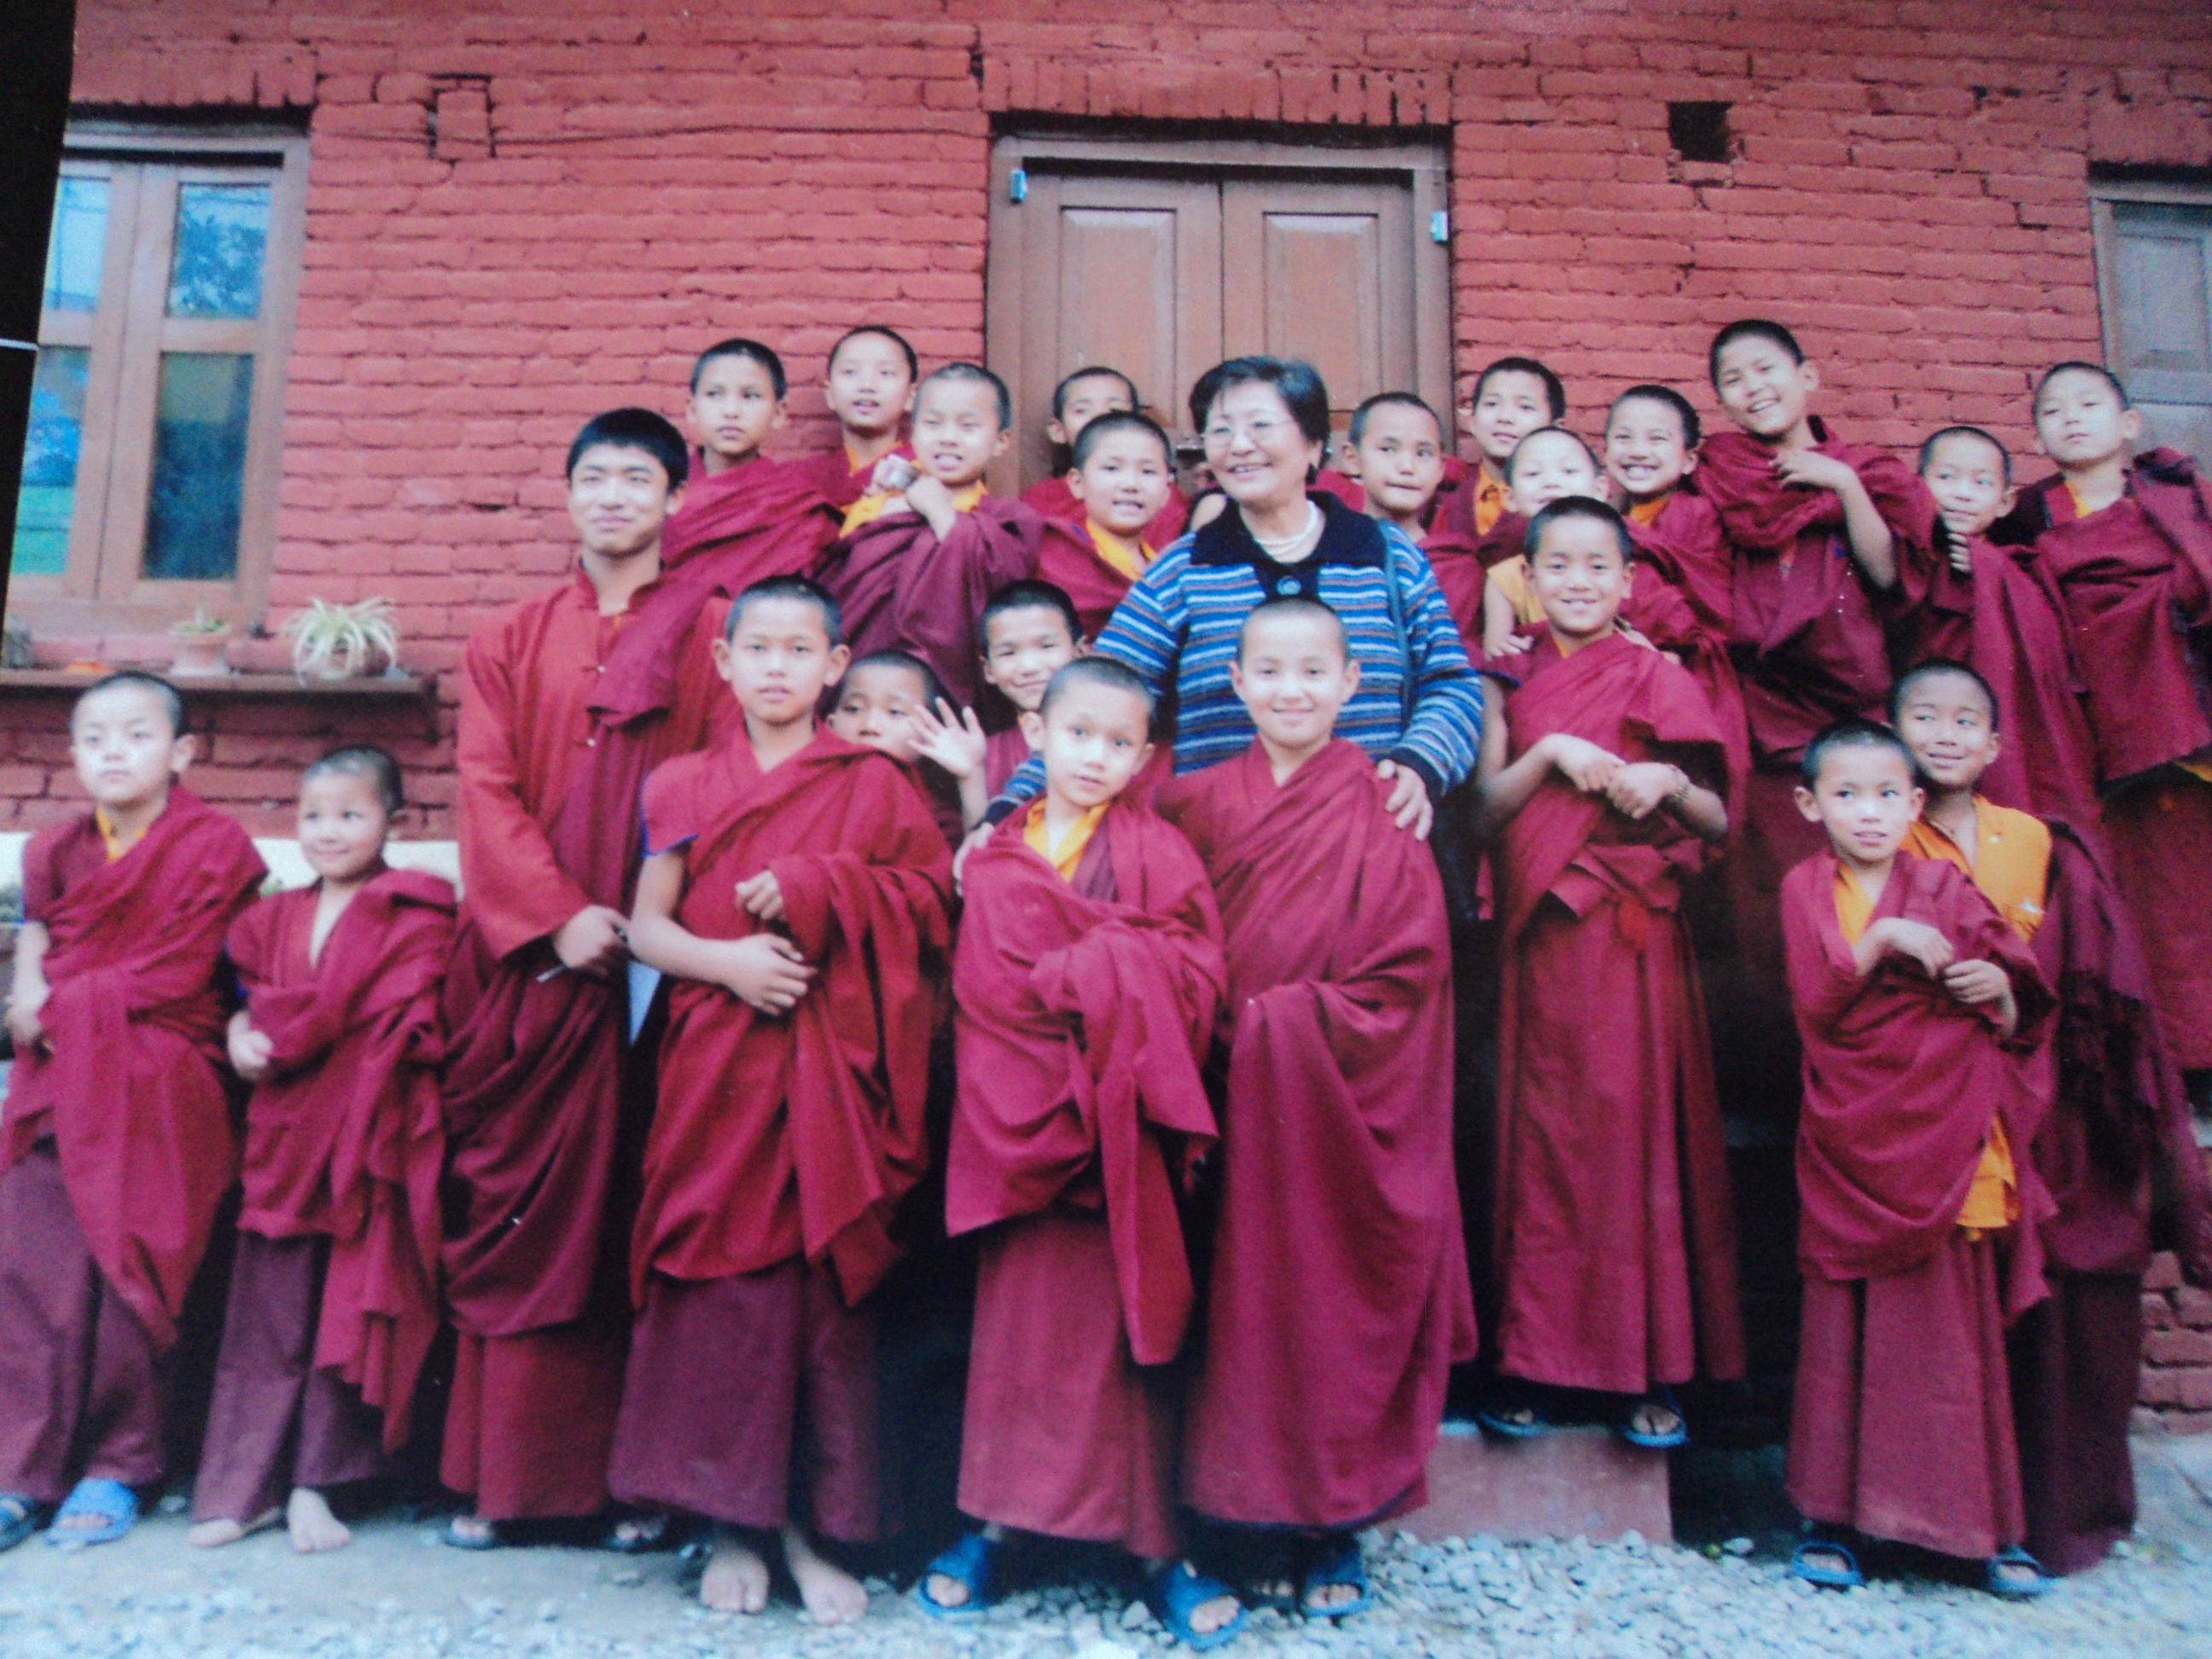 Mini Monks is one of Doma's aid projects